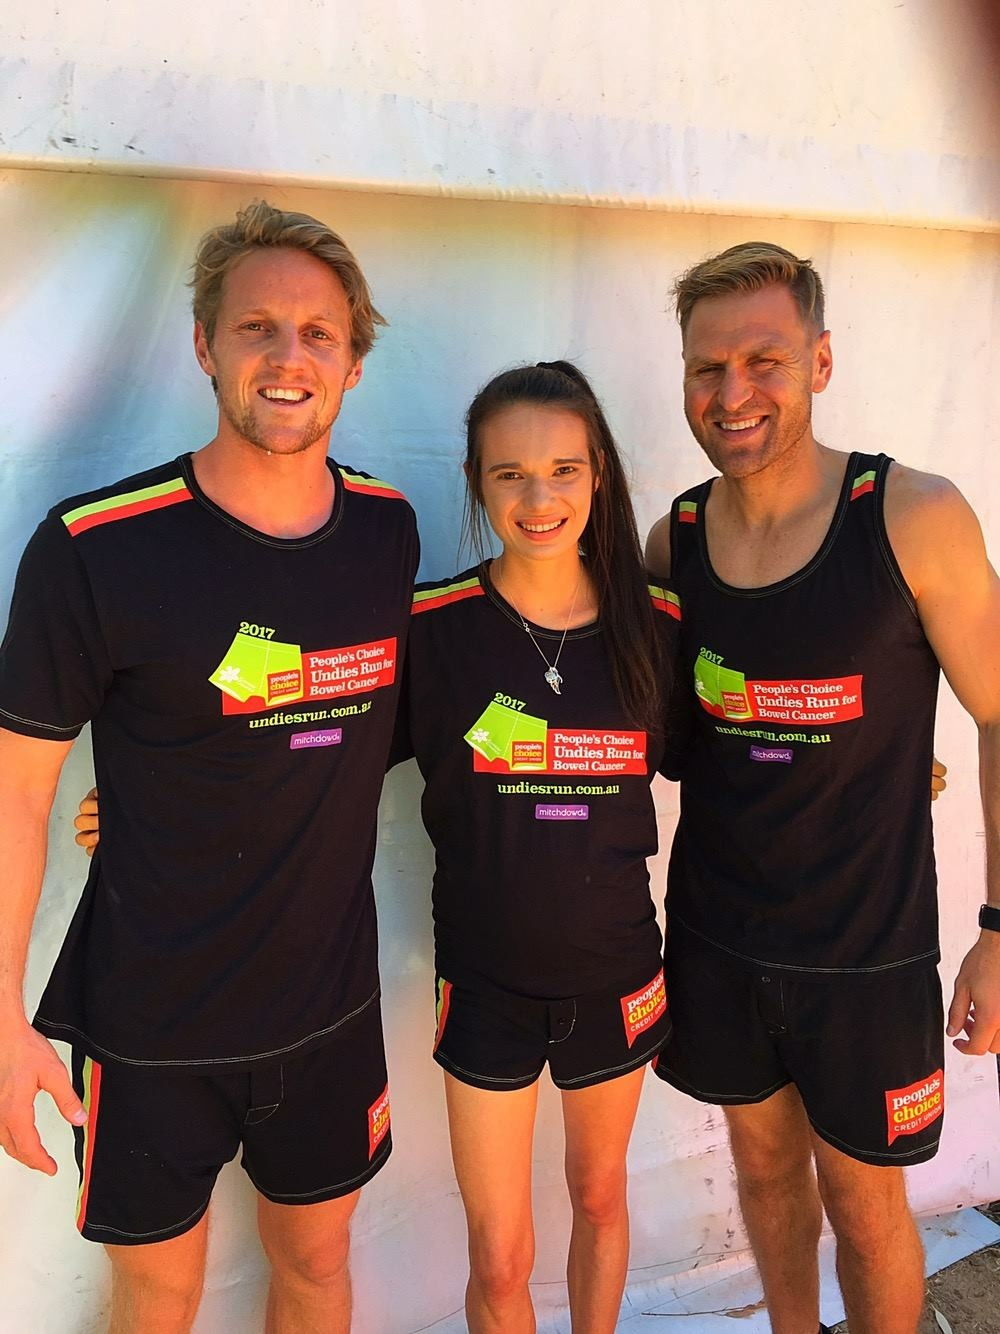 5 months after learning to walk again, Melissa successfully completed the Peoples Choice Undies Run to Kick Bowel Cancer in the Butt with Rory Sloane and Kane Cornes. She was also the second highest individual fund raiser for the event.